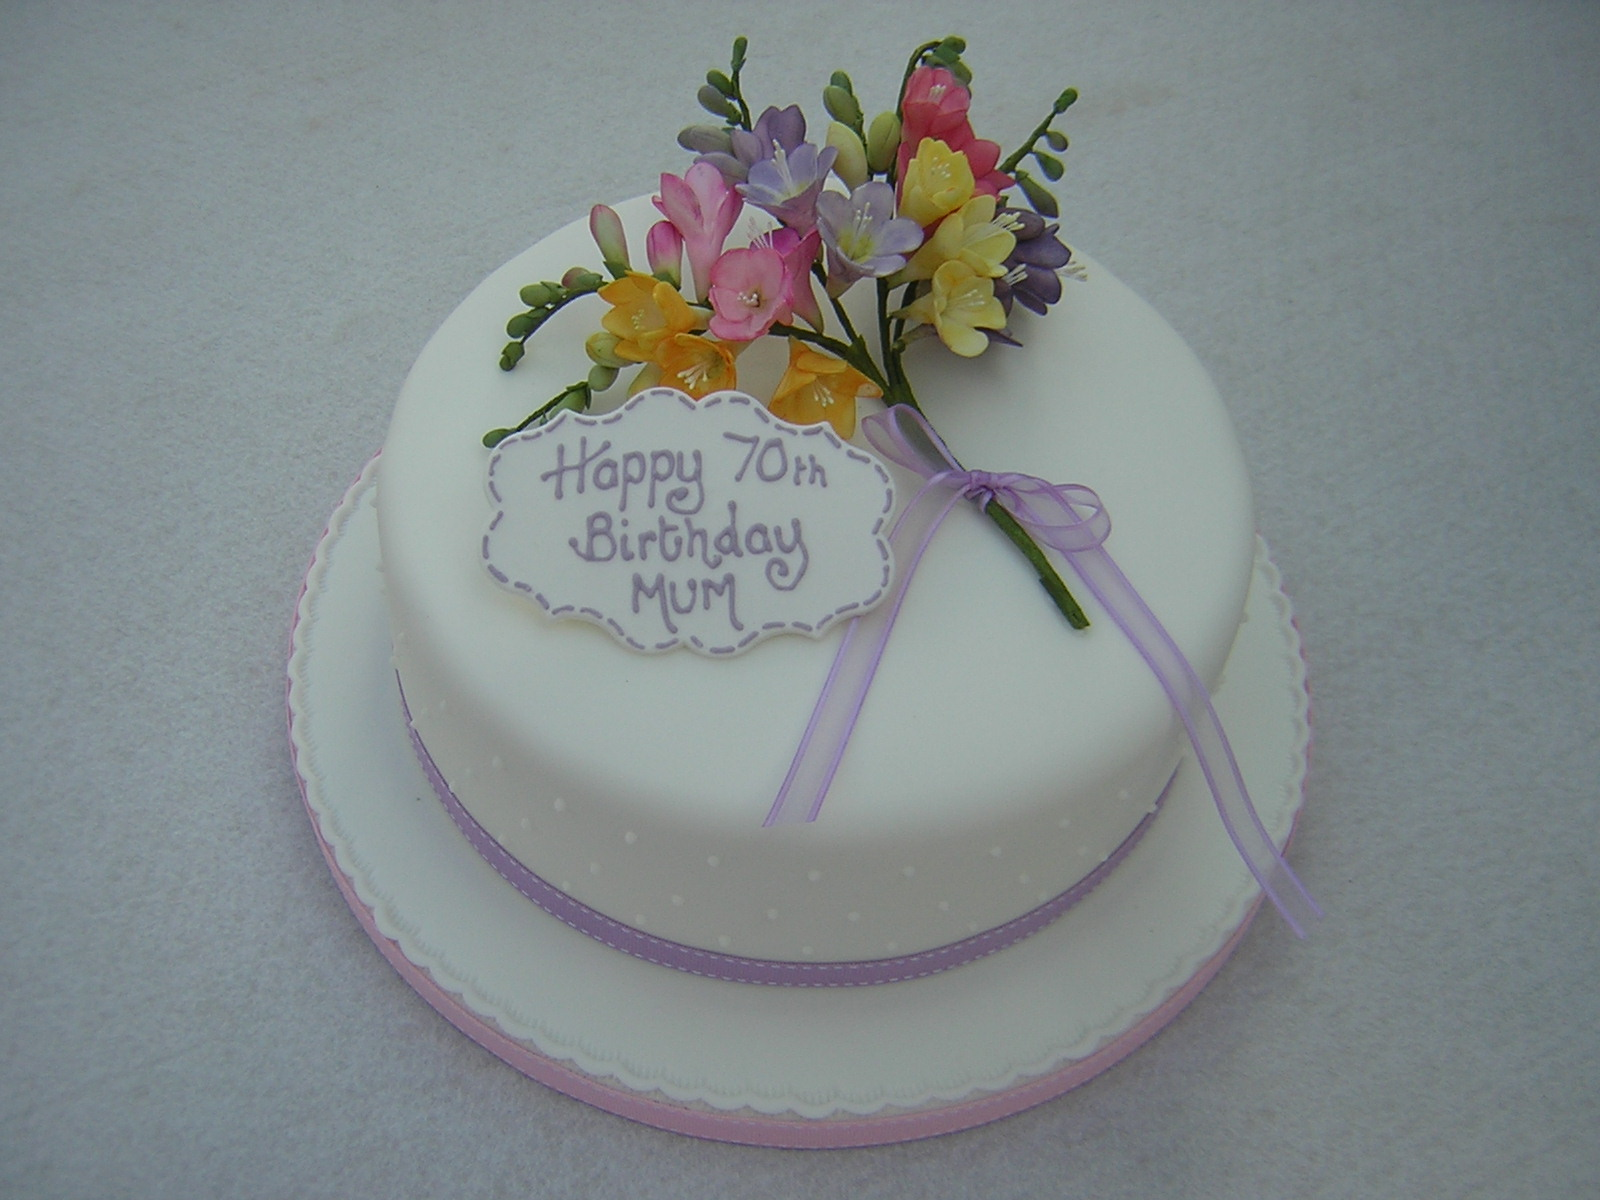 Birthday Cakes Ideas For Ladies ~ Birthday cake ideas for lady image inspiration of and decoration